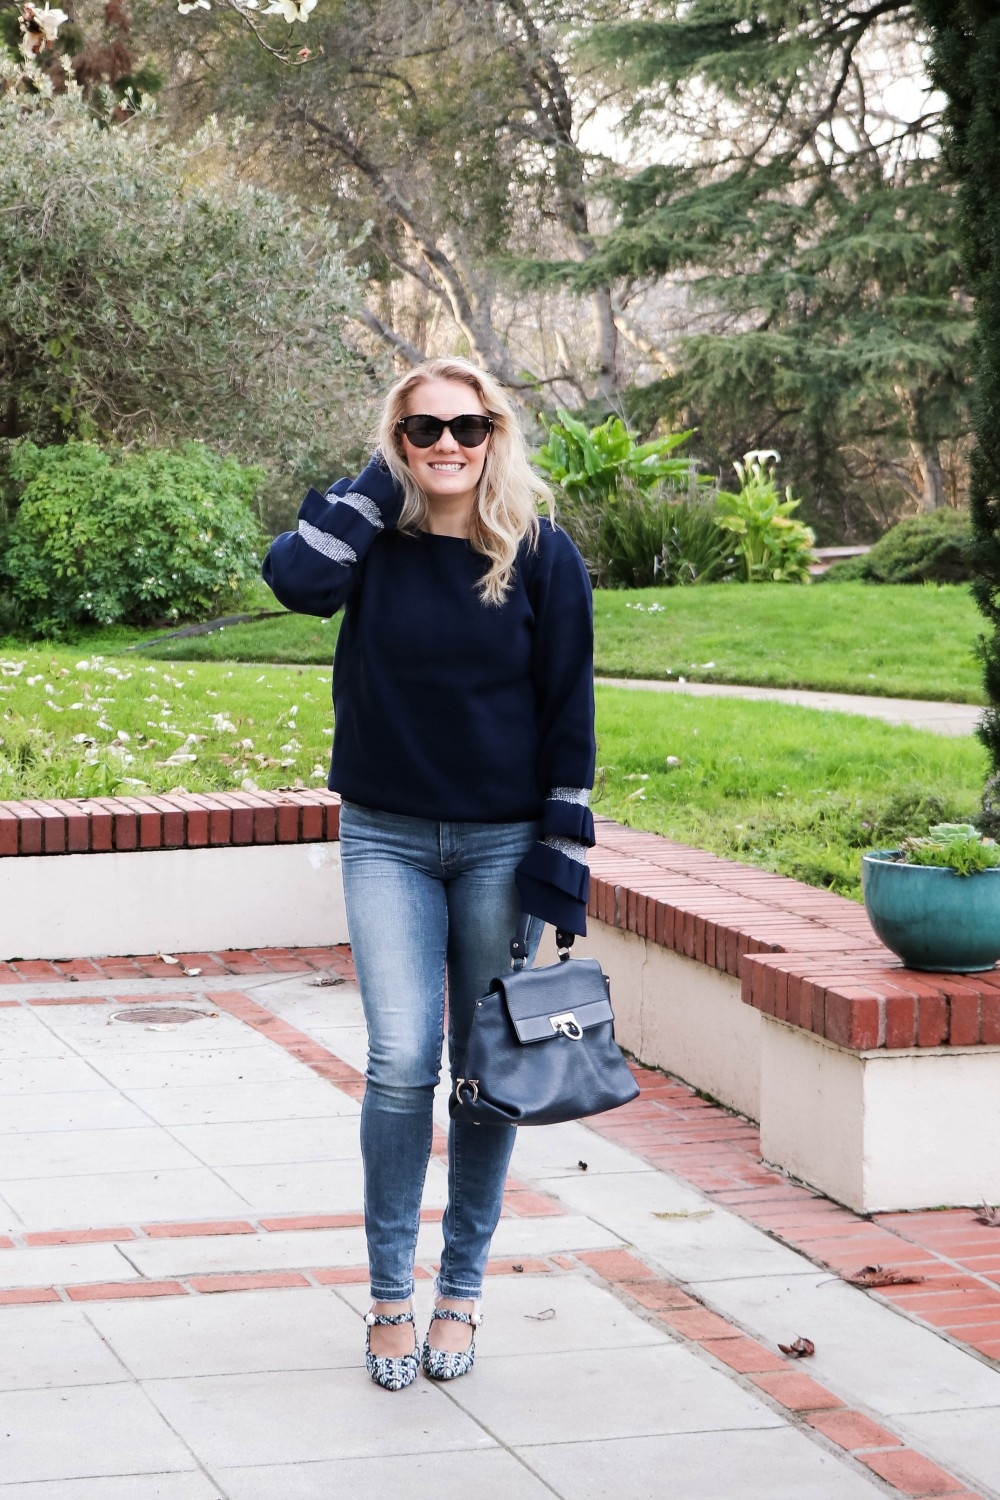 Wearing a Statement Sleeve Sweater is an Easy Way to Look Chic With not Much Effort! Click on the Photo to Check out the Post! | Have Need Want. #statementsleeves #statementsleevesweater #winterstyle